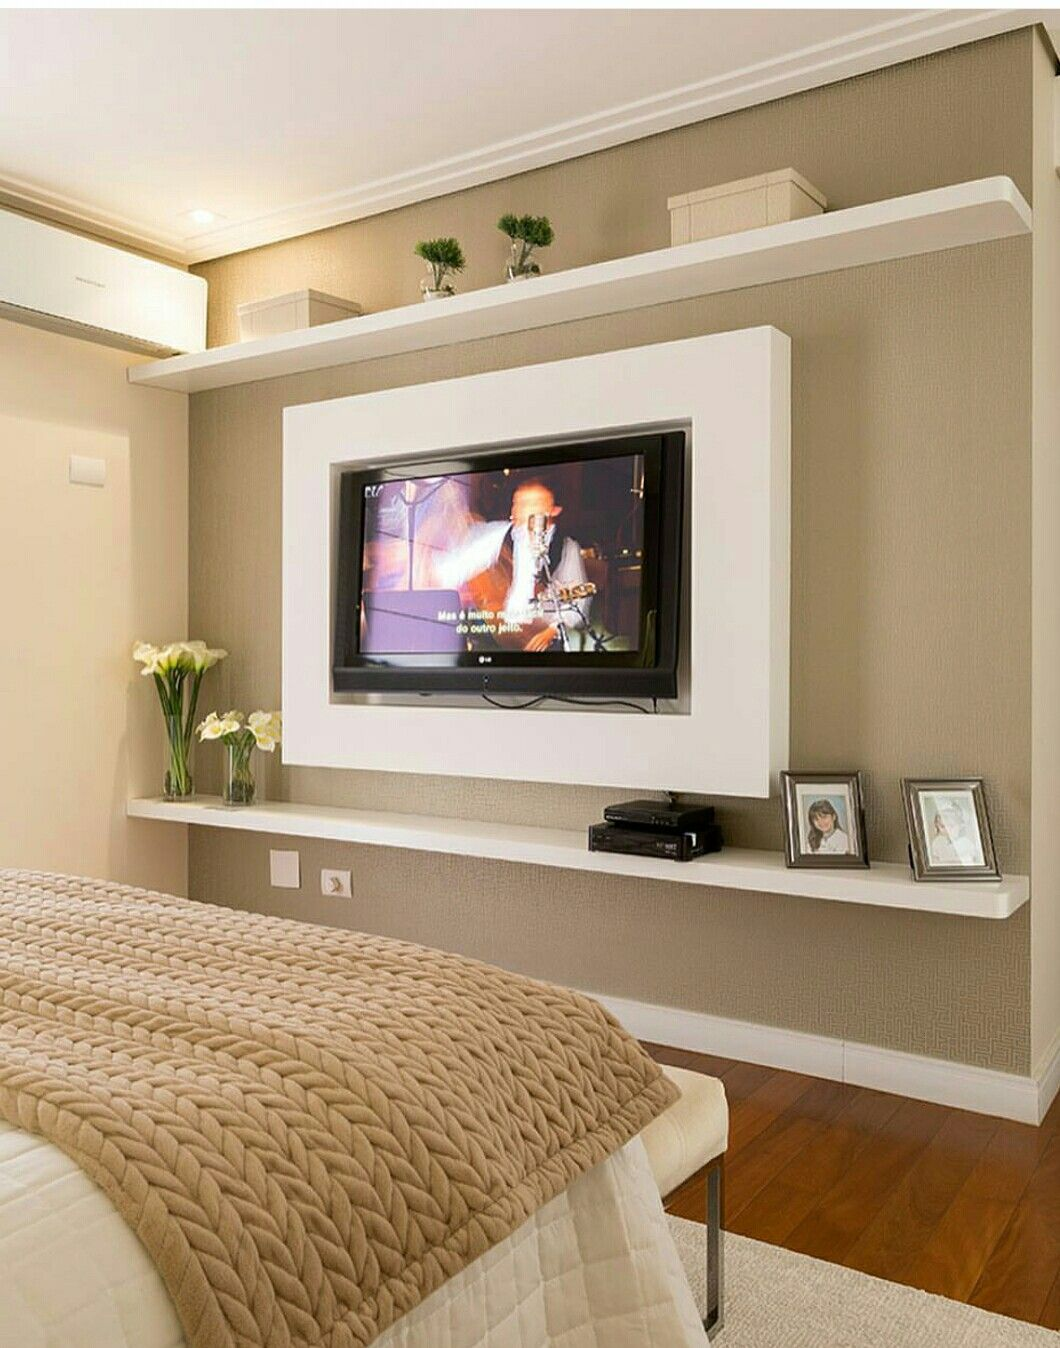 Pin de bongi sithole en d cor ideas pinterest for Decoracion mueble tv